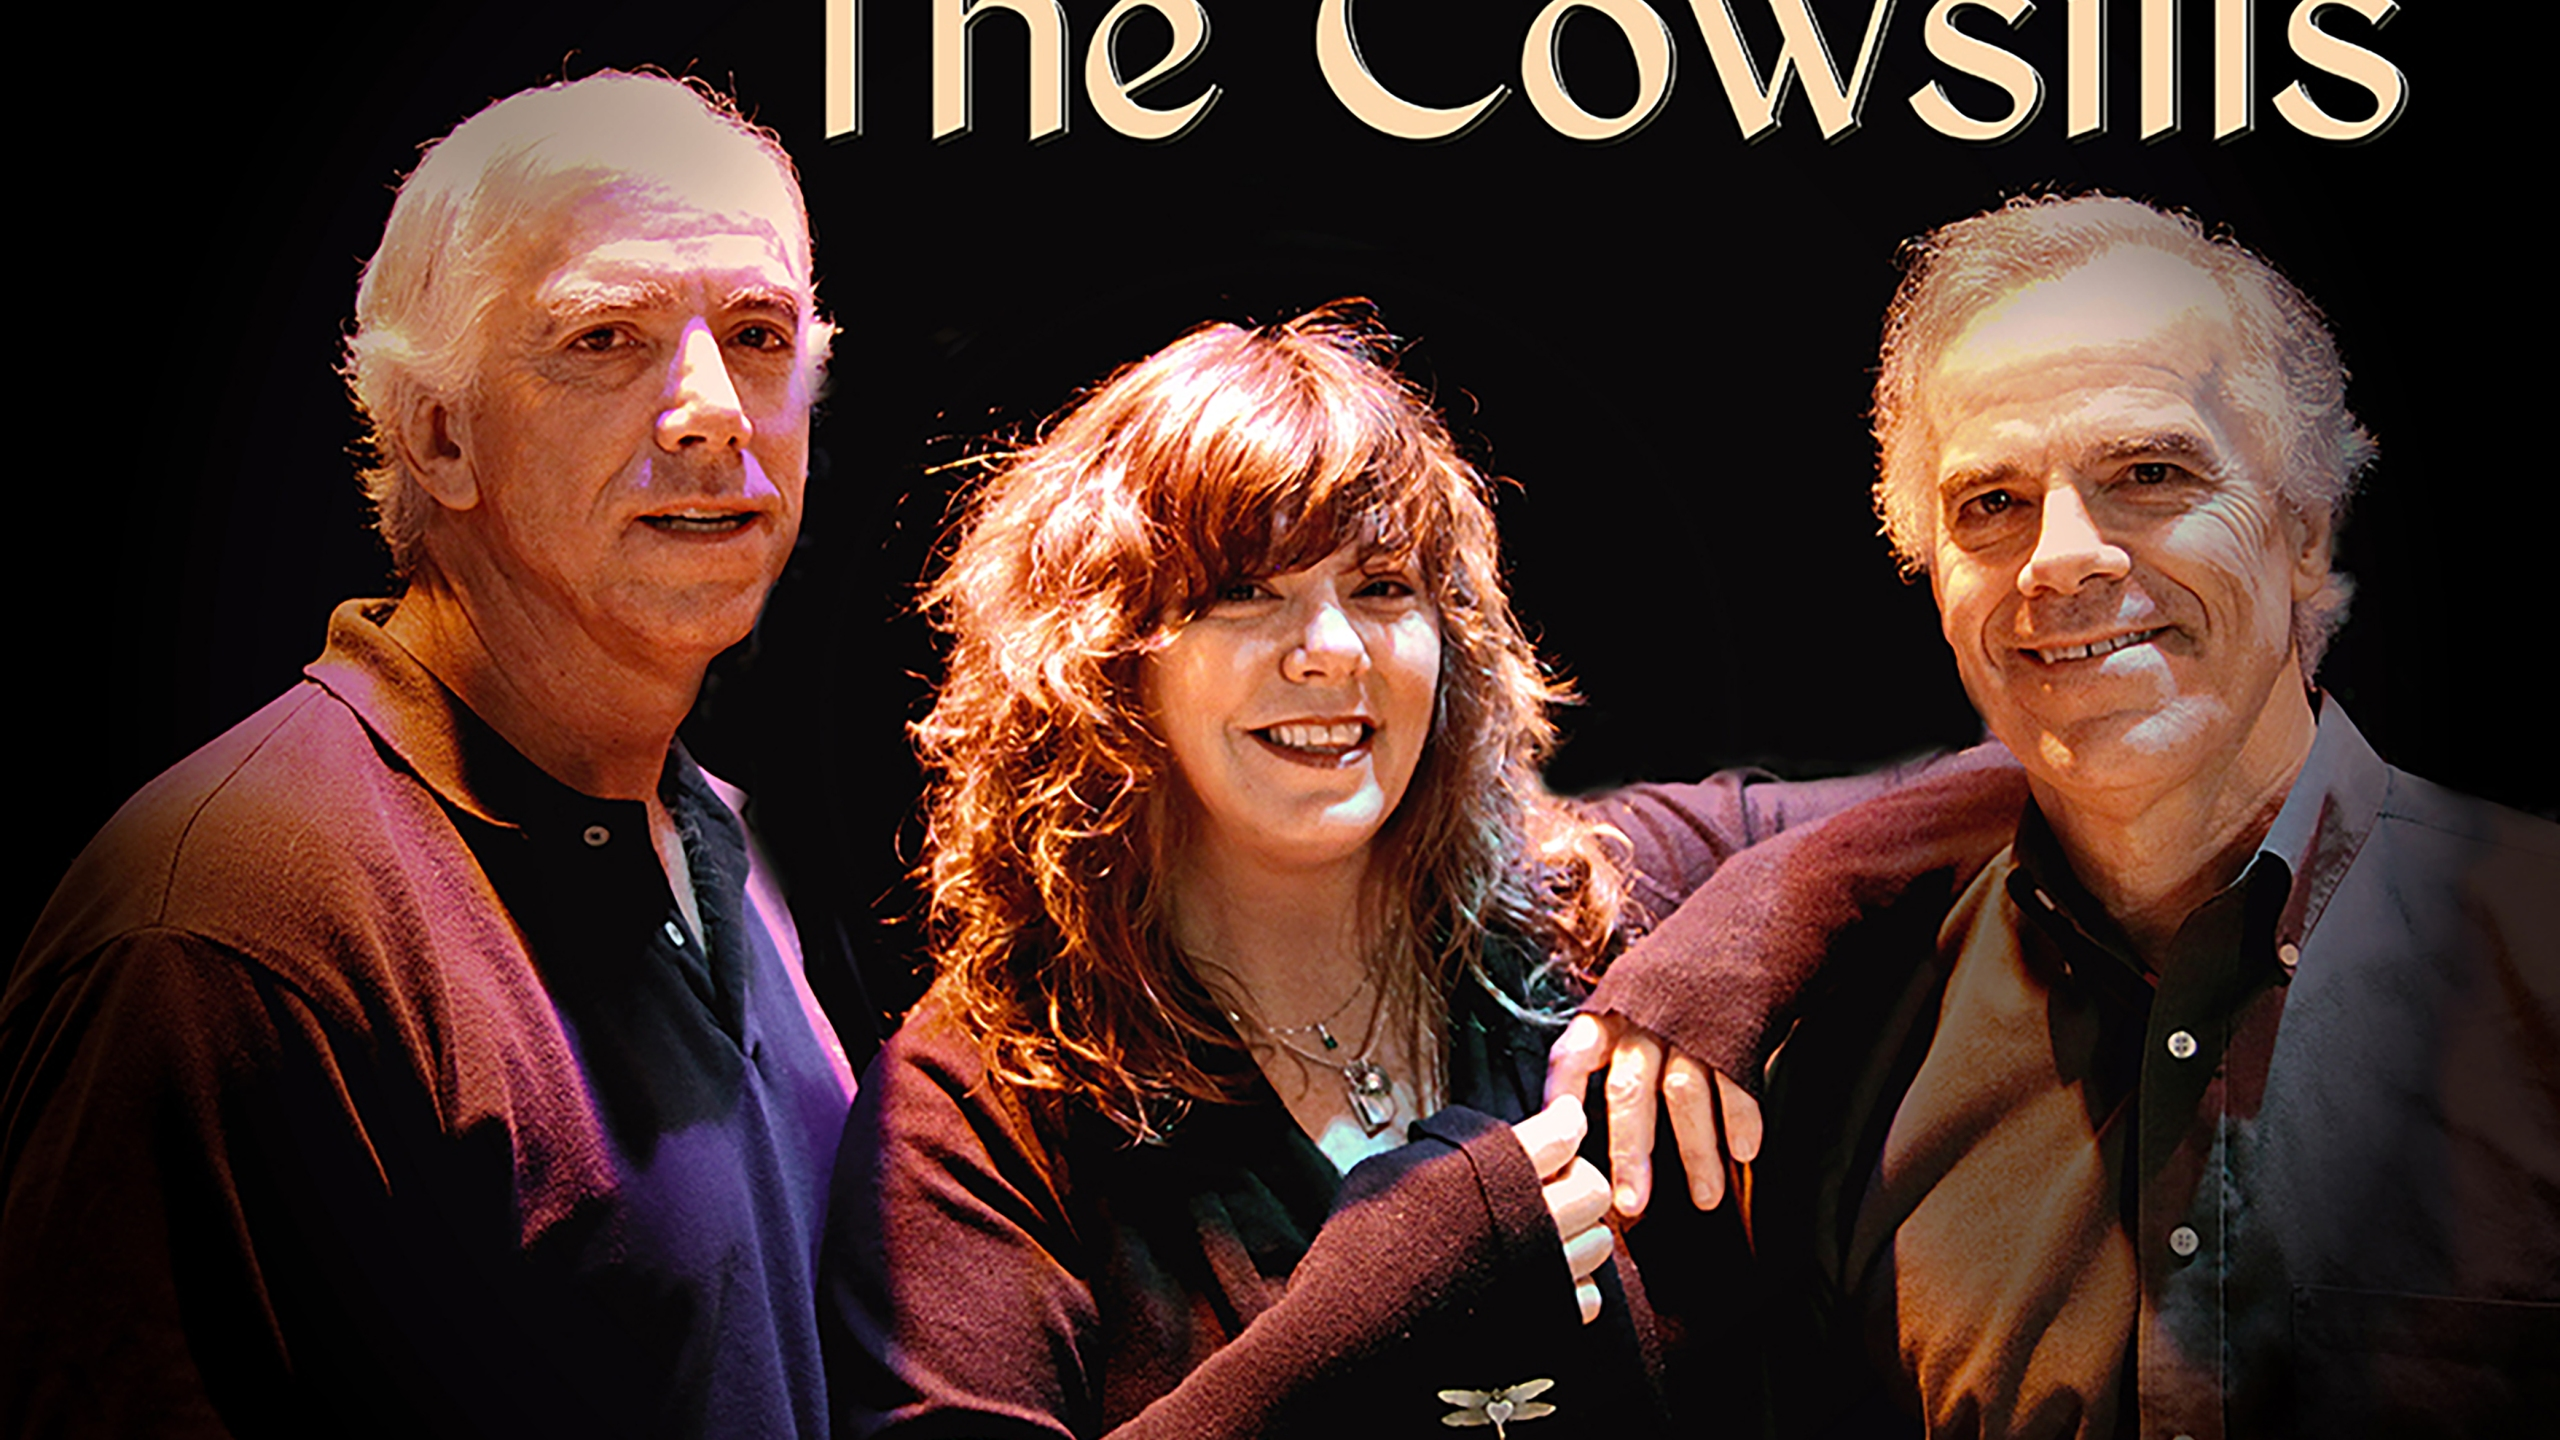 The Cowsills Media Photo_1501515914536.jpg